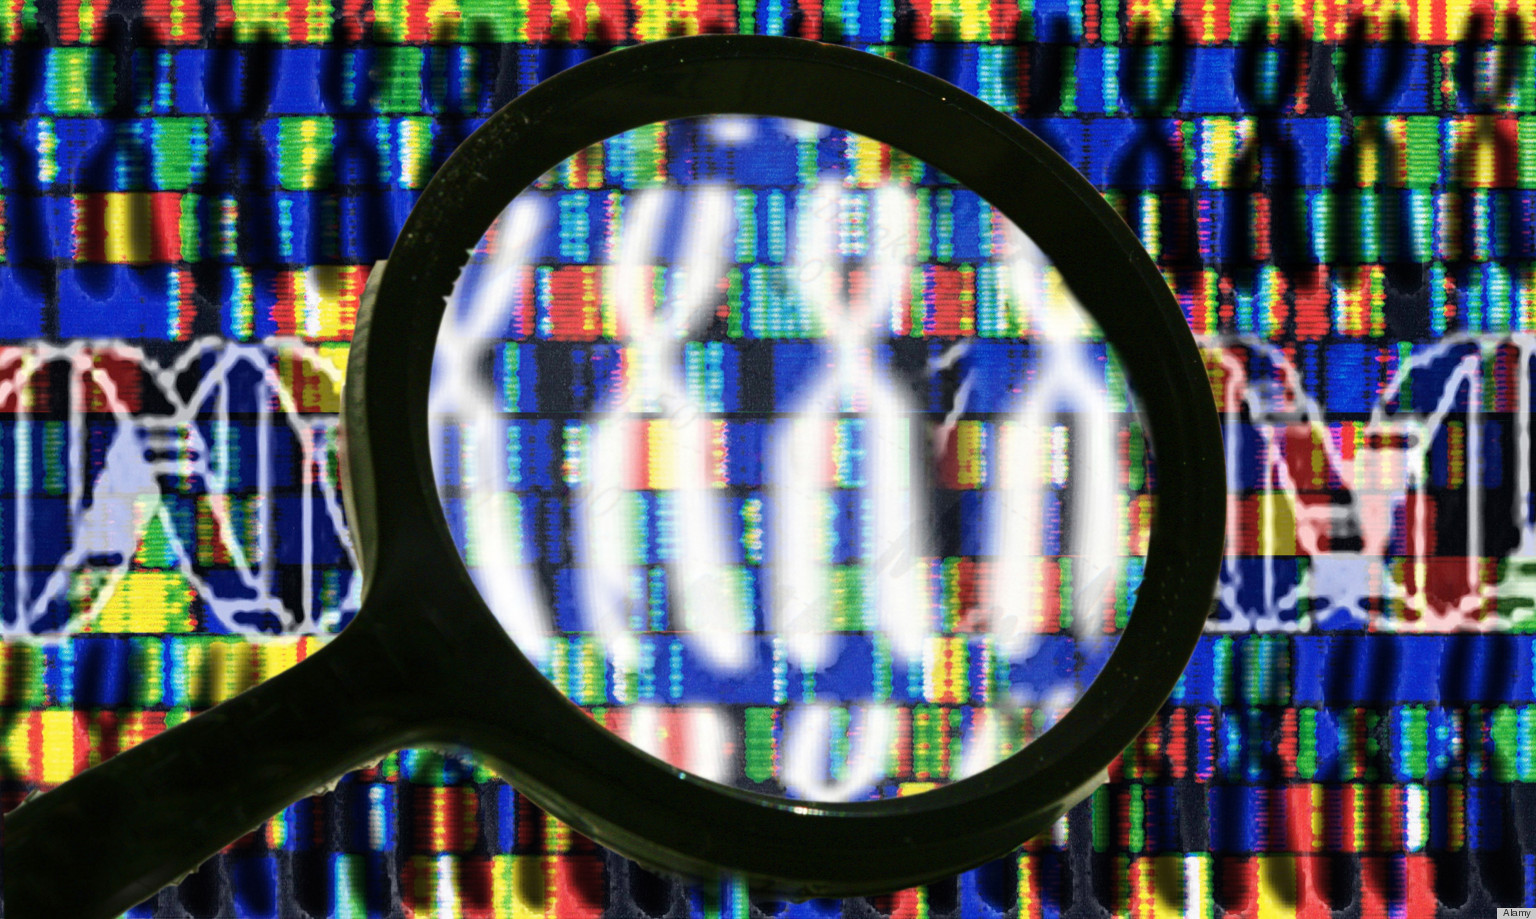 human genome project information The human genome project (1990-2003) was a public project whose two central goals were to sequence the entire human genome and find all of the genes within it.